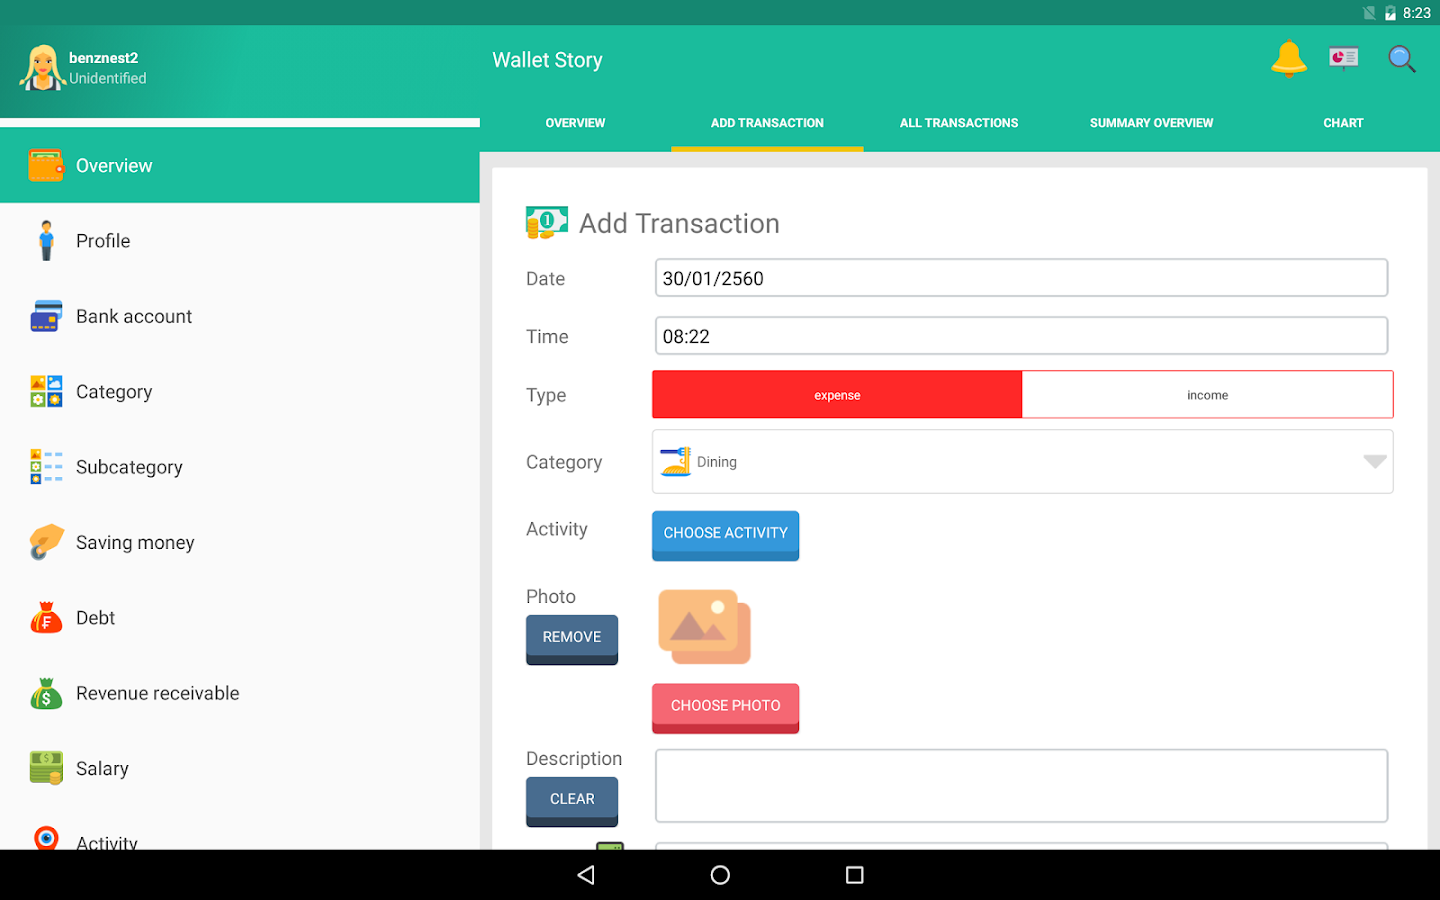 Wallet Story - Expense Manager- screenshot